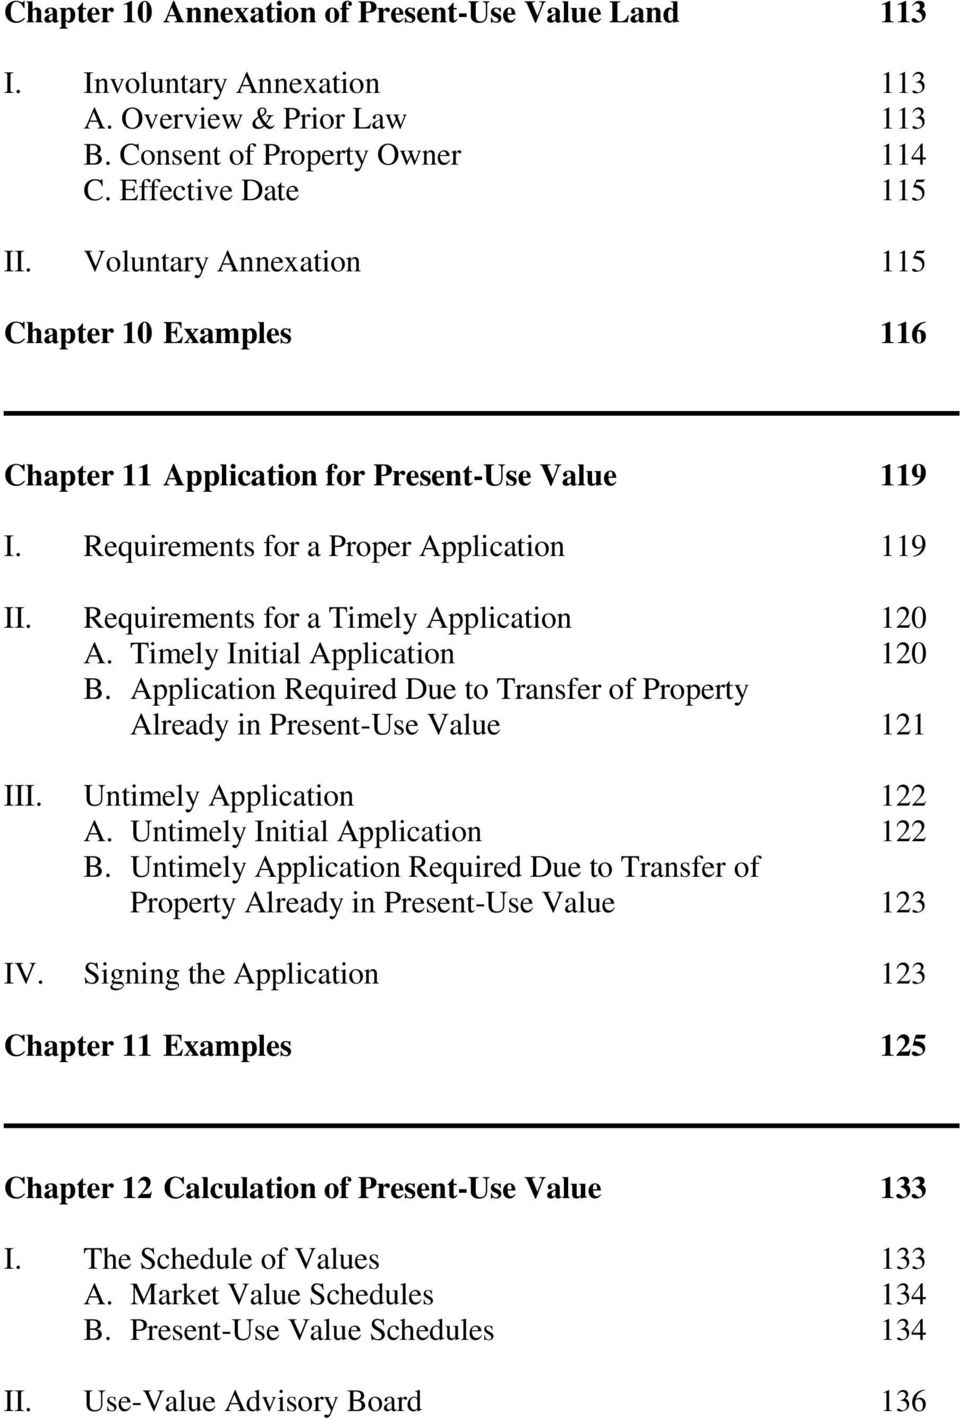 Timely Initial Application 120 B. Application Required Due to Transfer of Property Already in Present-Use Value 121 III. Untimely Application 122 A. Untimely Initial Application 122 B.